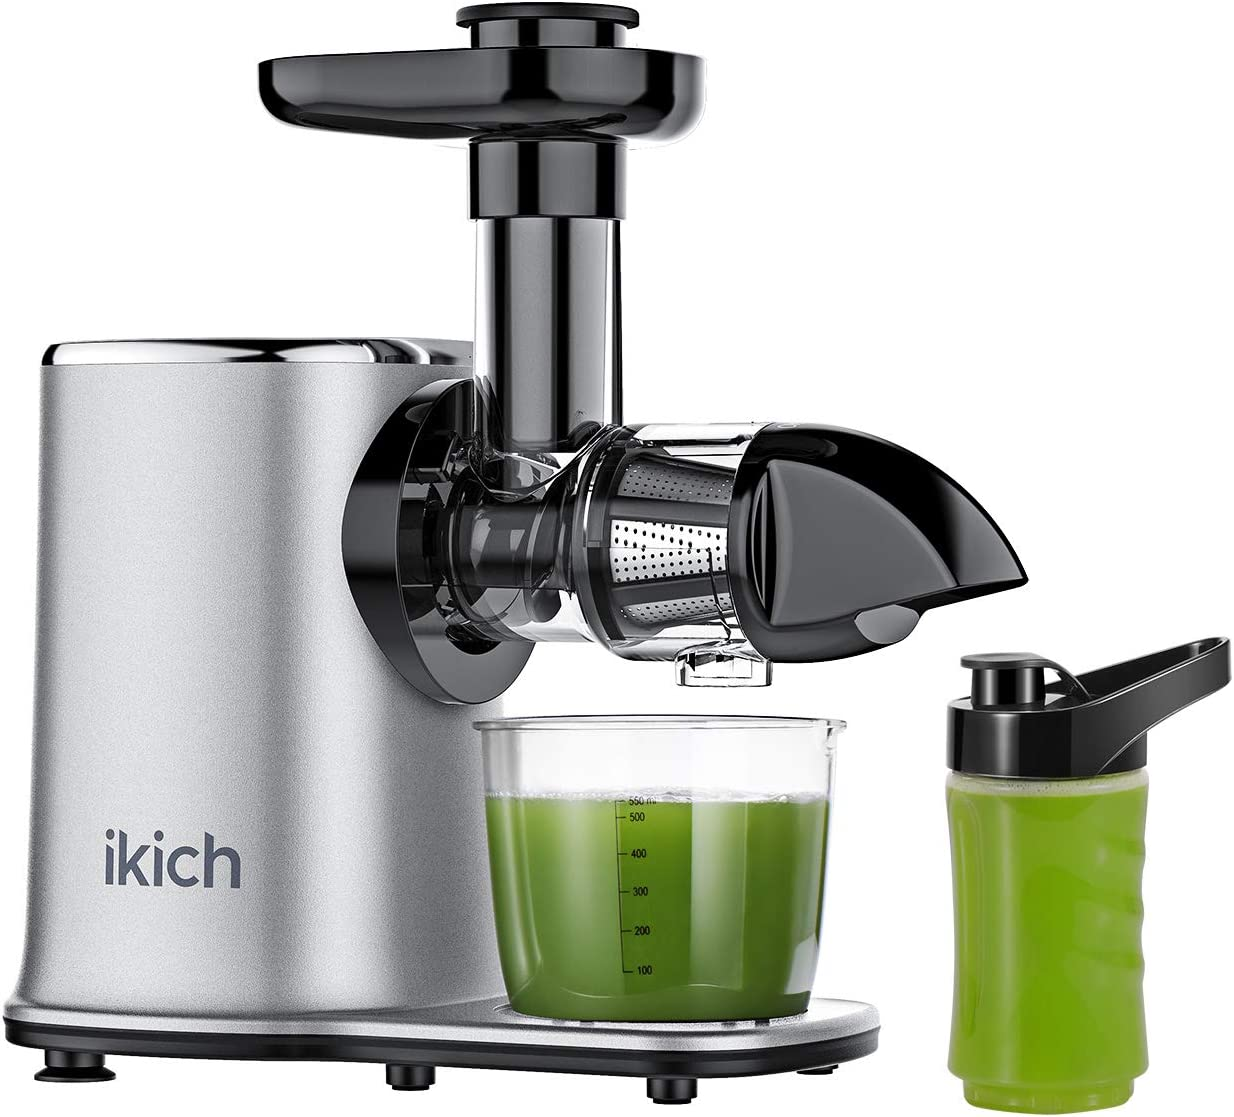 IKICH Masticating Juicer Machines 2-Speed Slow Masticating Juicer Easy to Clean, High Juice Yield, Reverse Function Cold Press Juicer Machine with Portable Bottle and Recipes for Vegetables and Fruits